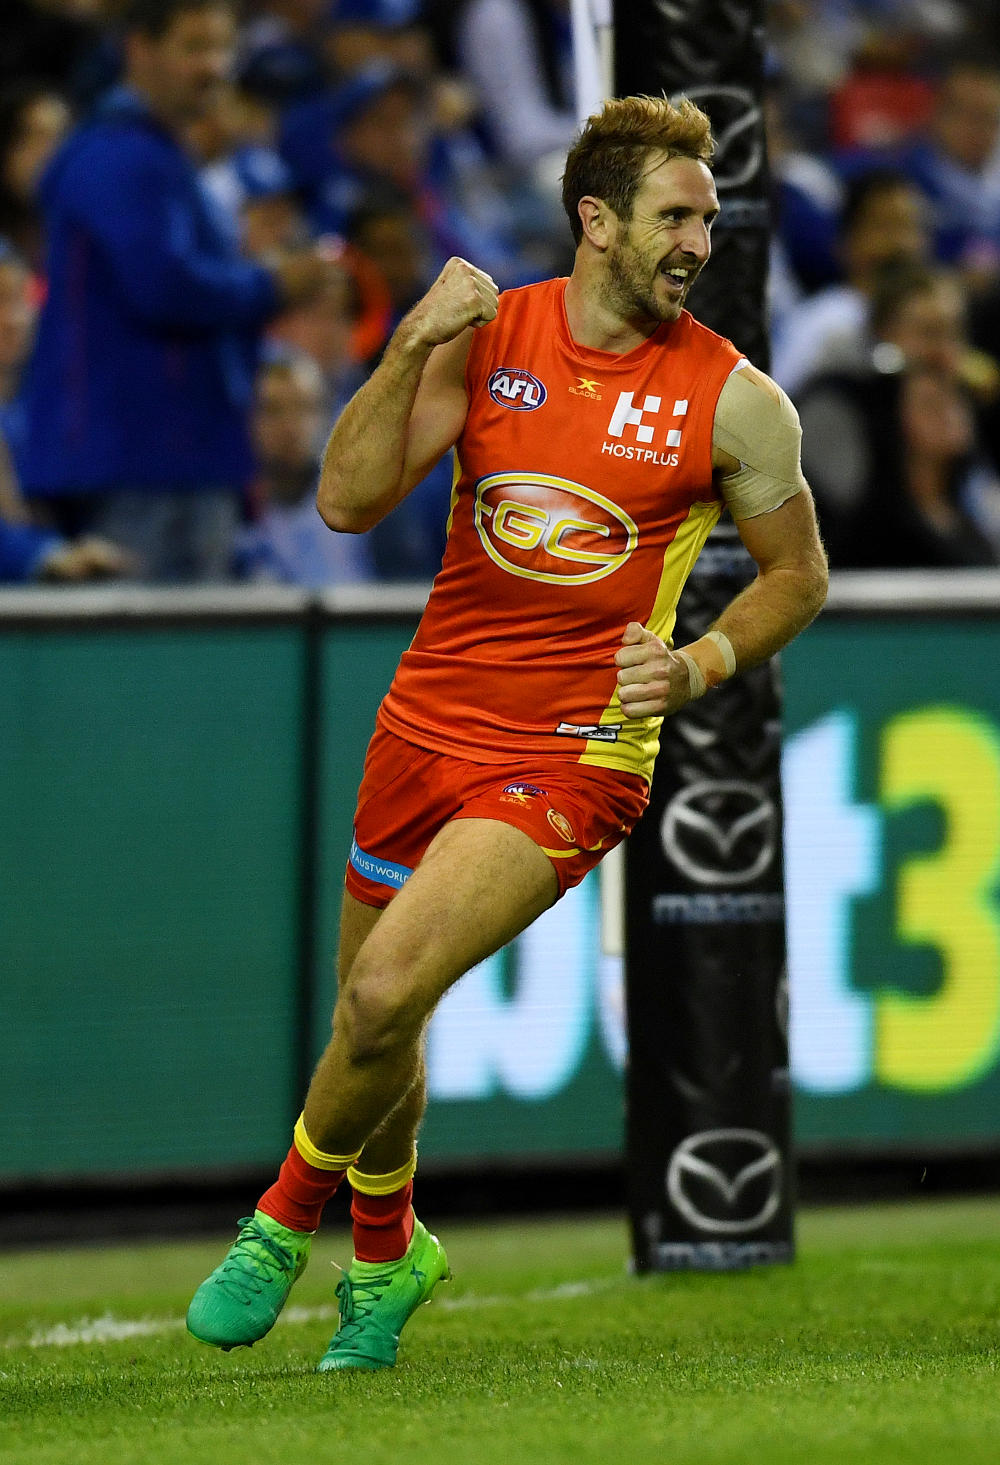 Michael Barlow Gold Coast Suns AFL 2017 tall